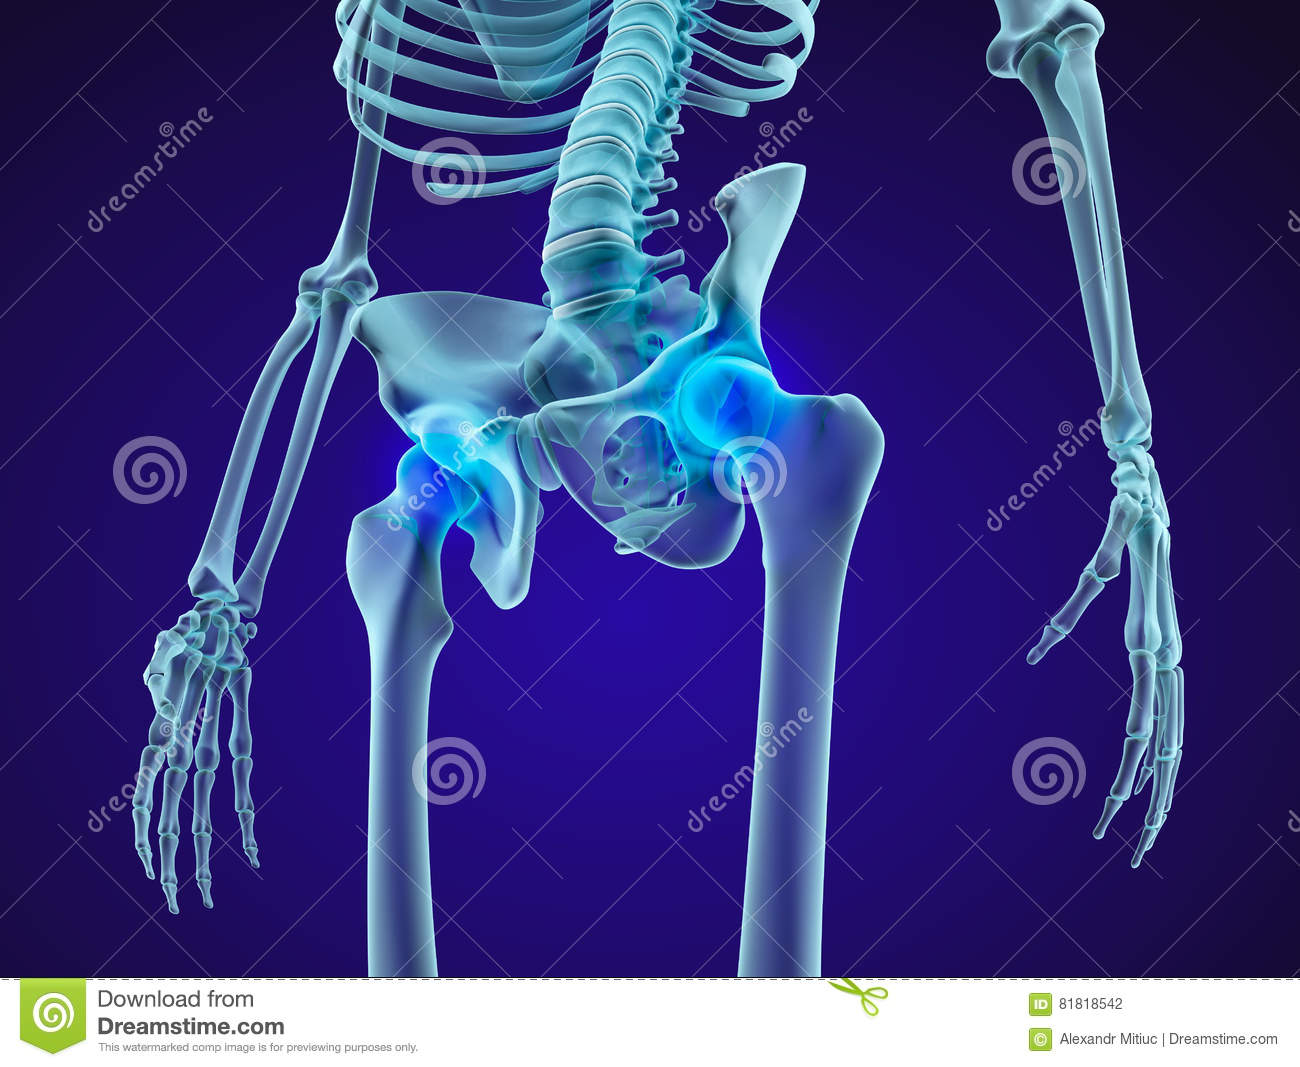 human skeleton: pelvis and sacrum  xray view  medically accurate 3d  illustration